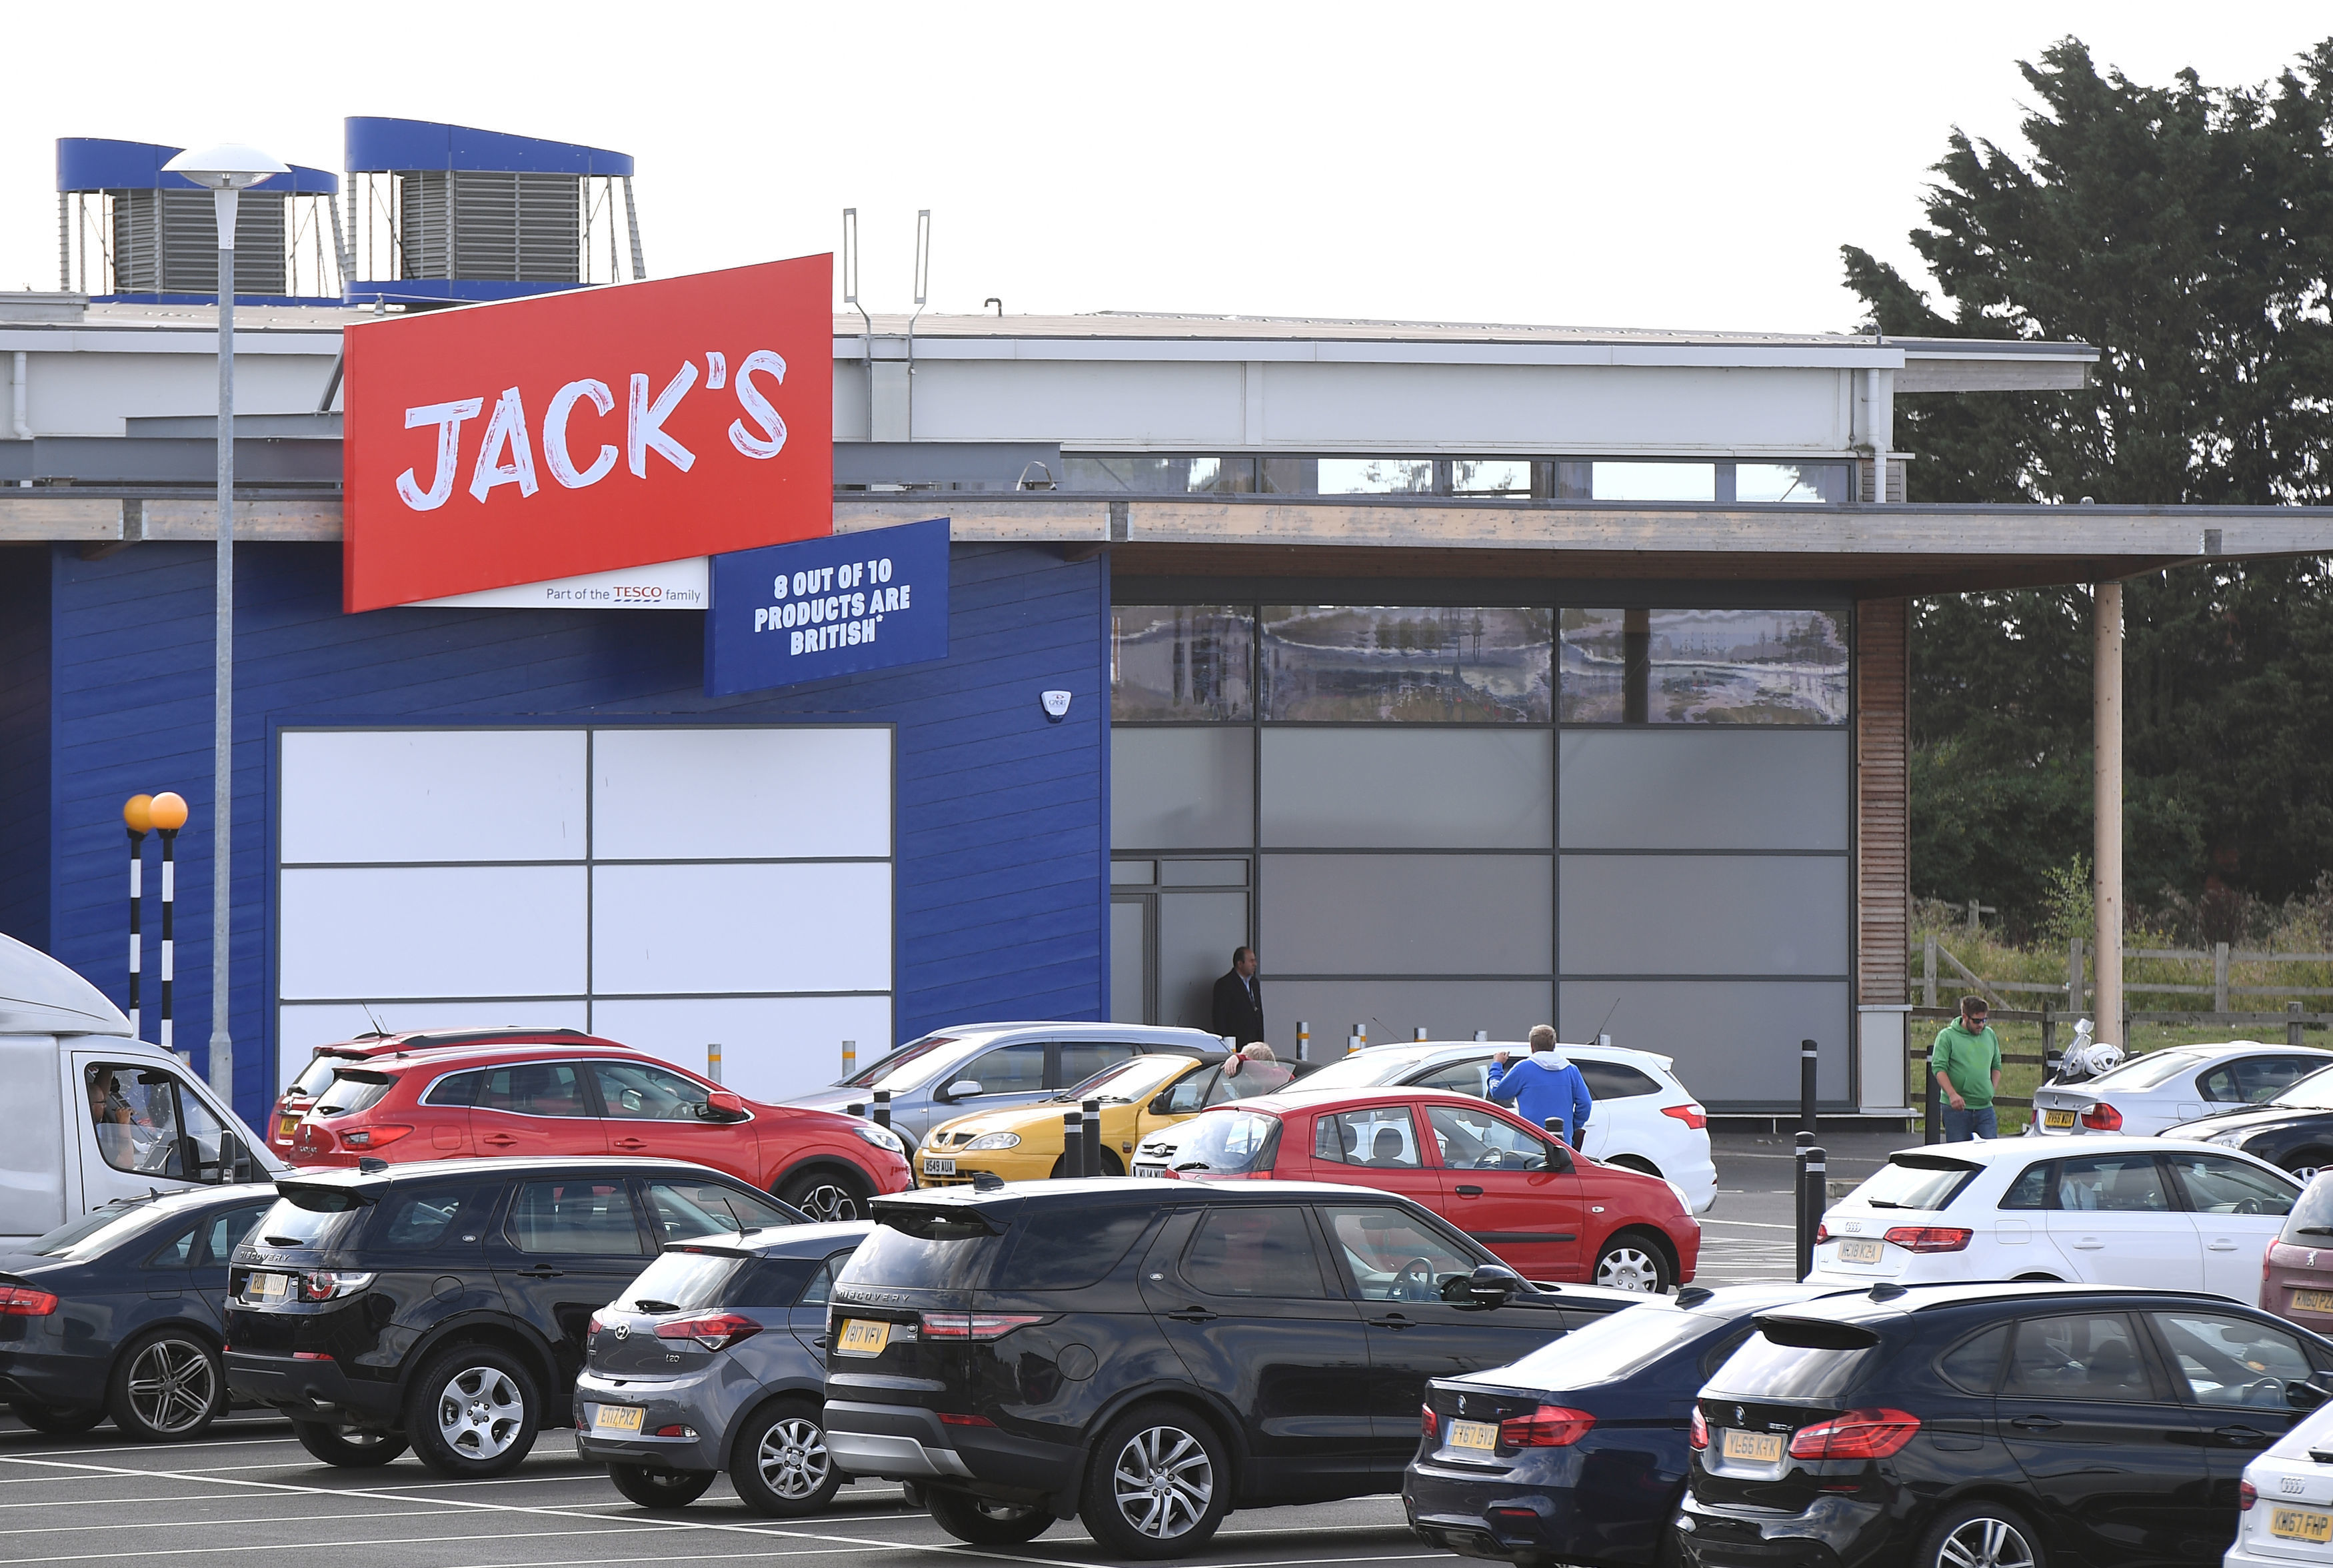 Tesco launches discount store Jack's to take on Lidl and Aldi